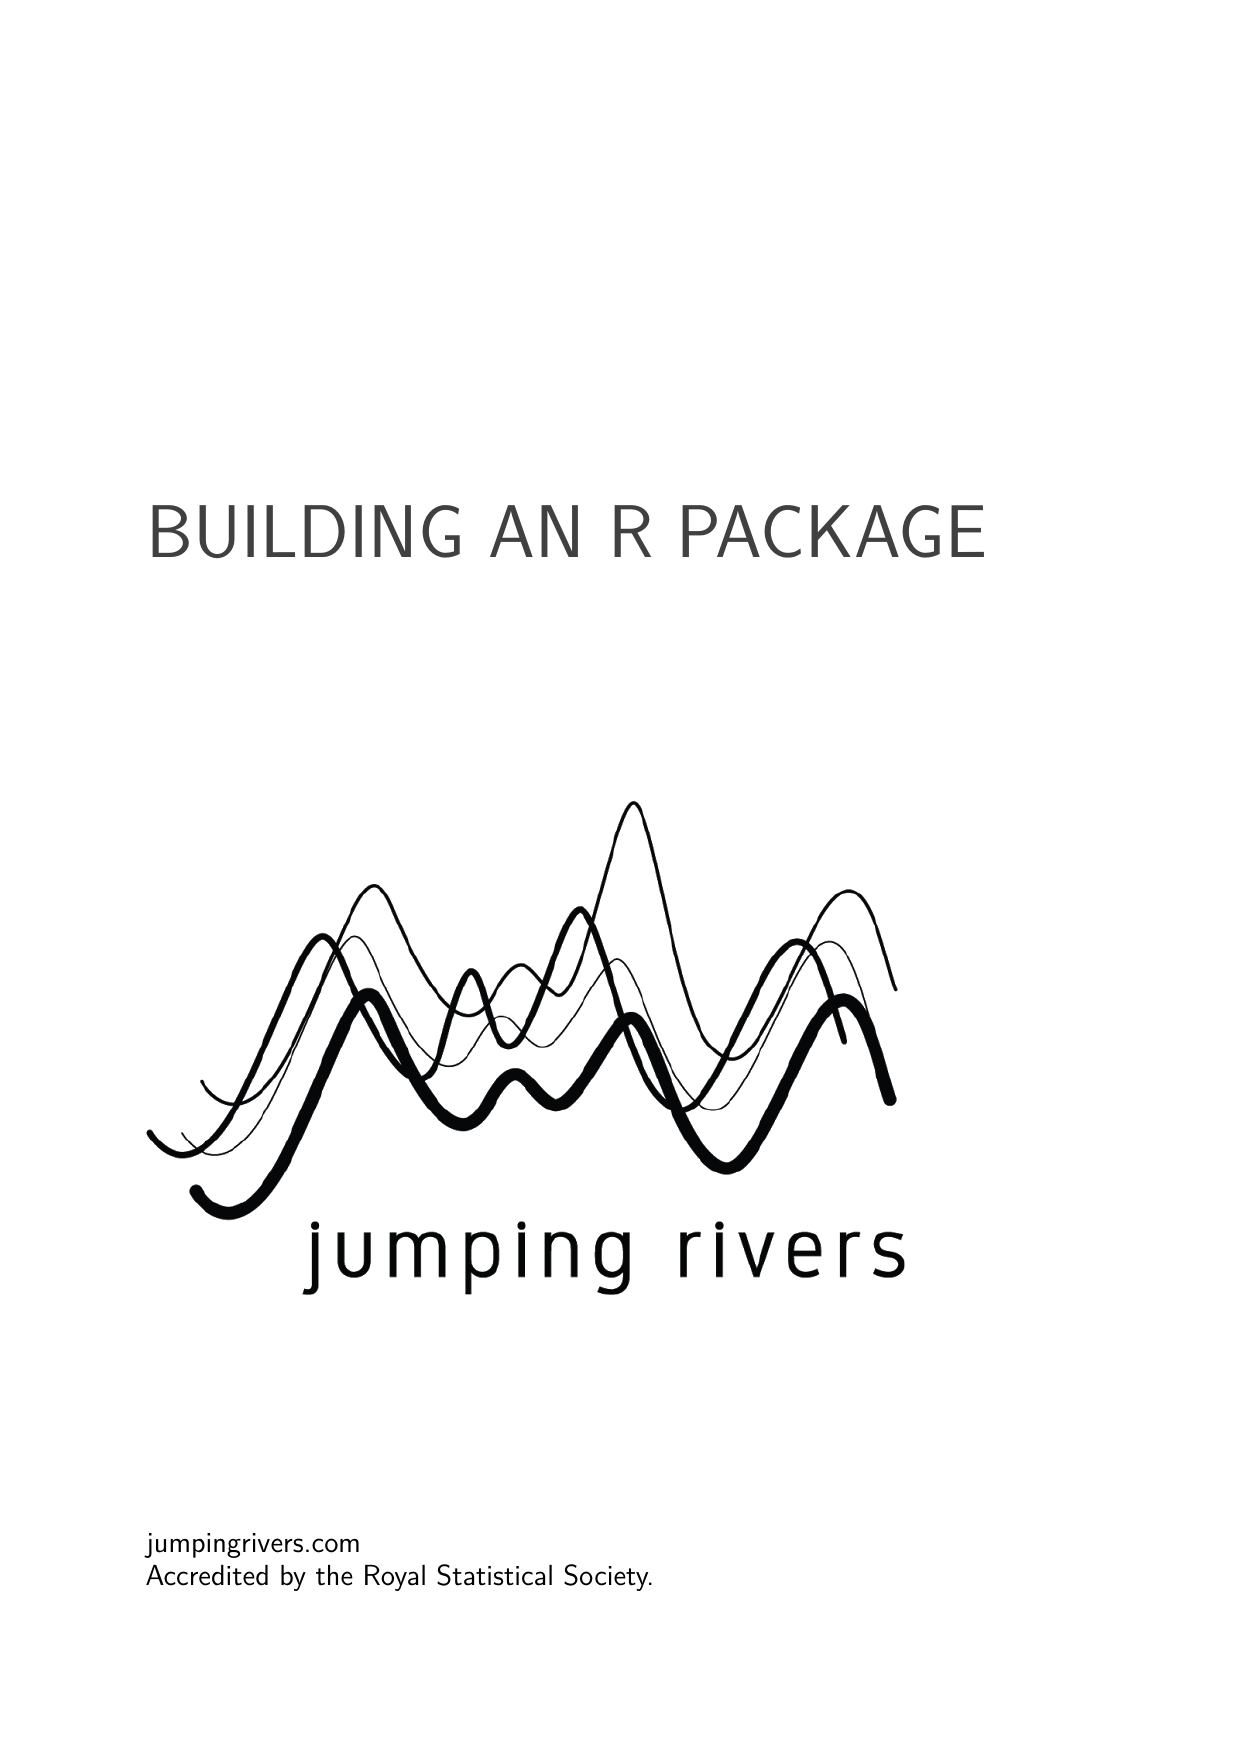 Example course material for 'Building an R Package